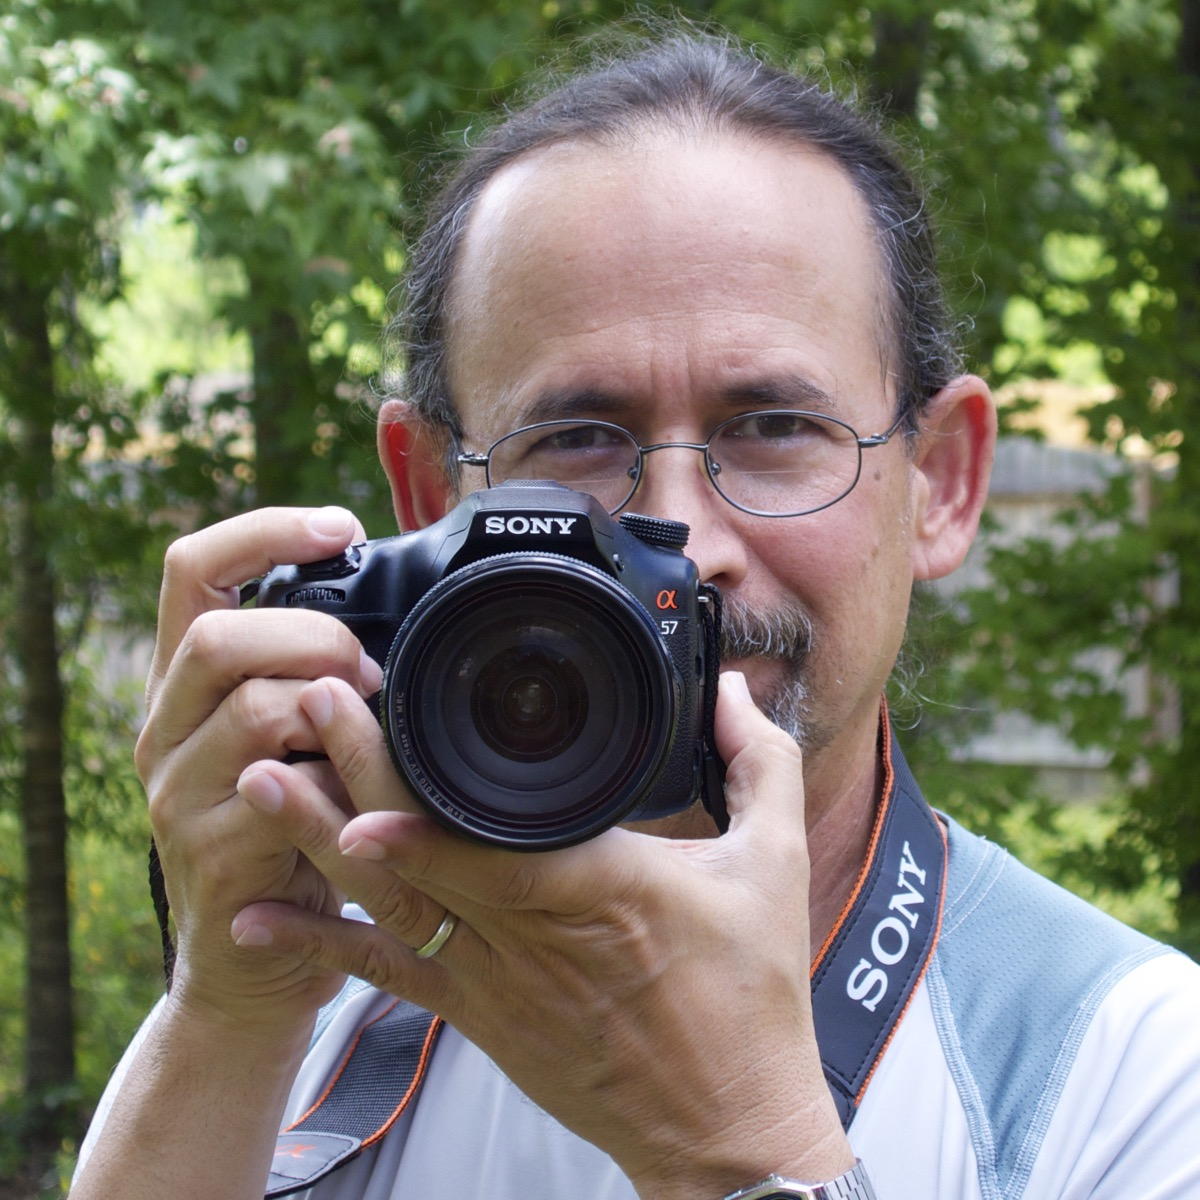 Boyarski teaches digital photography workshops